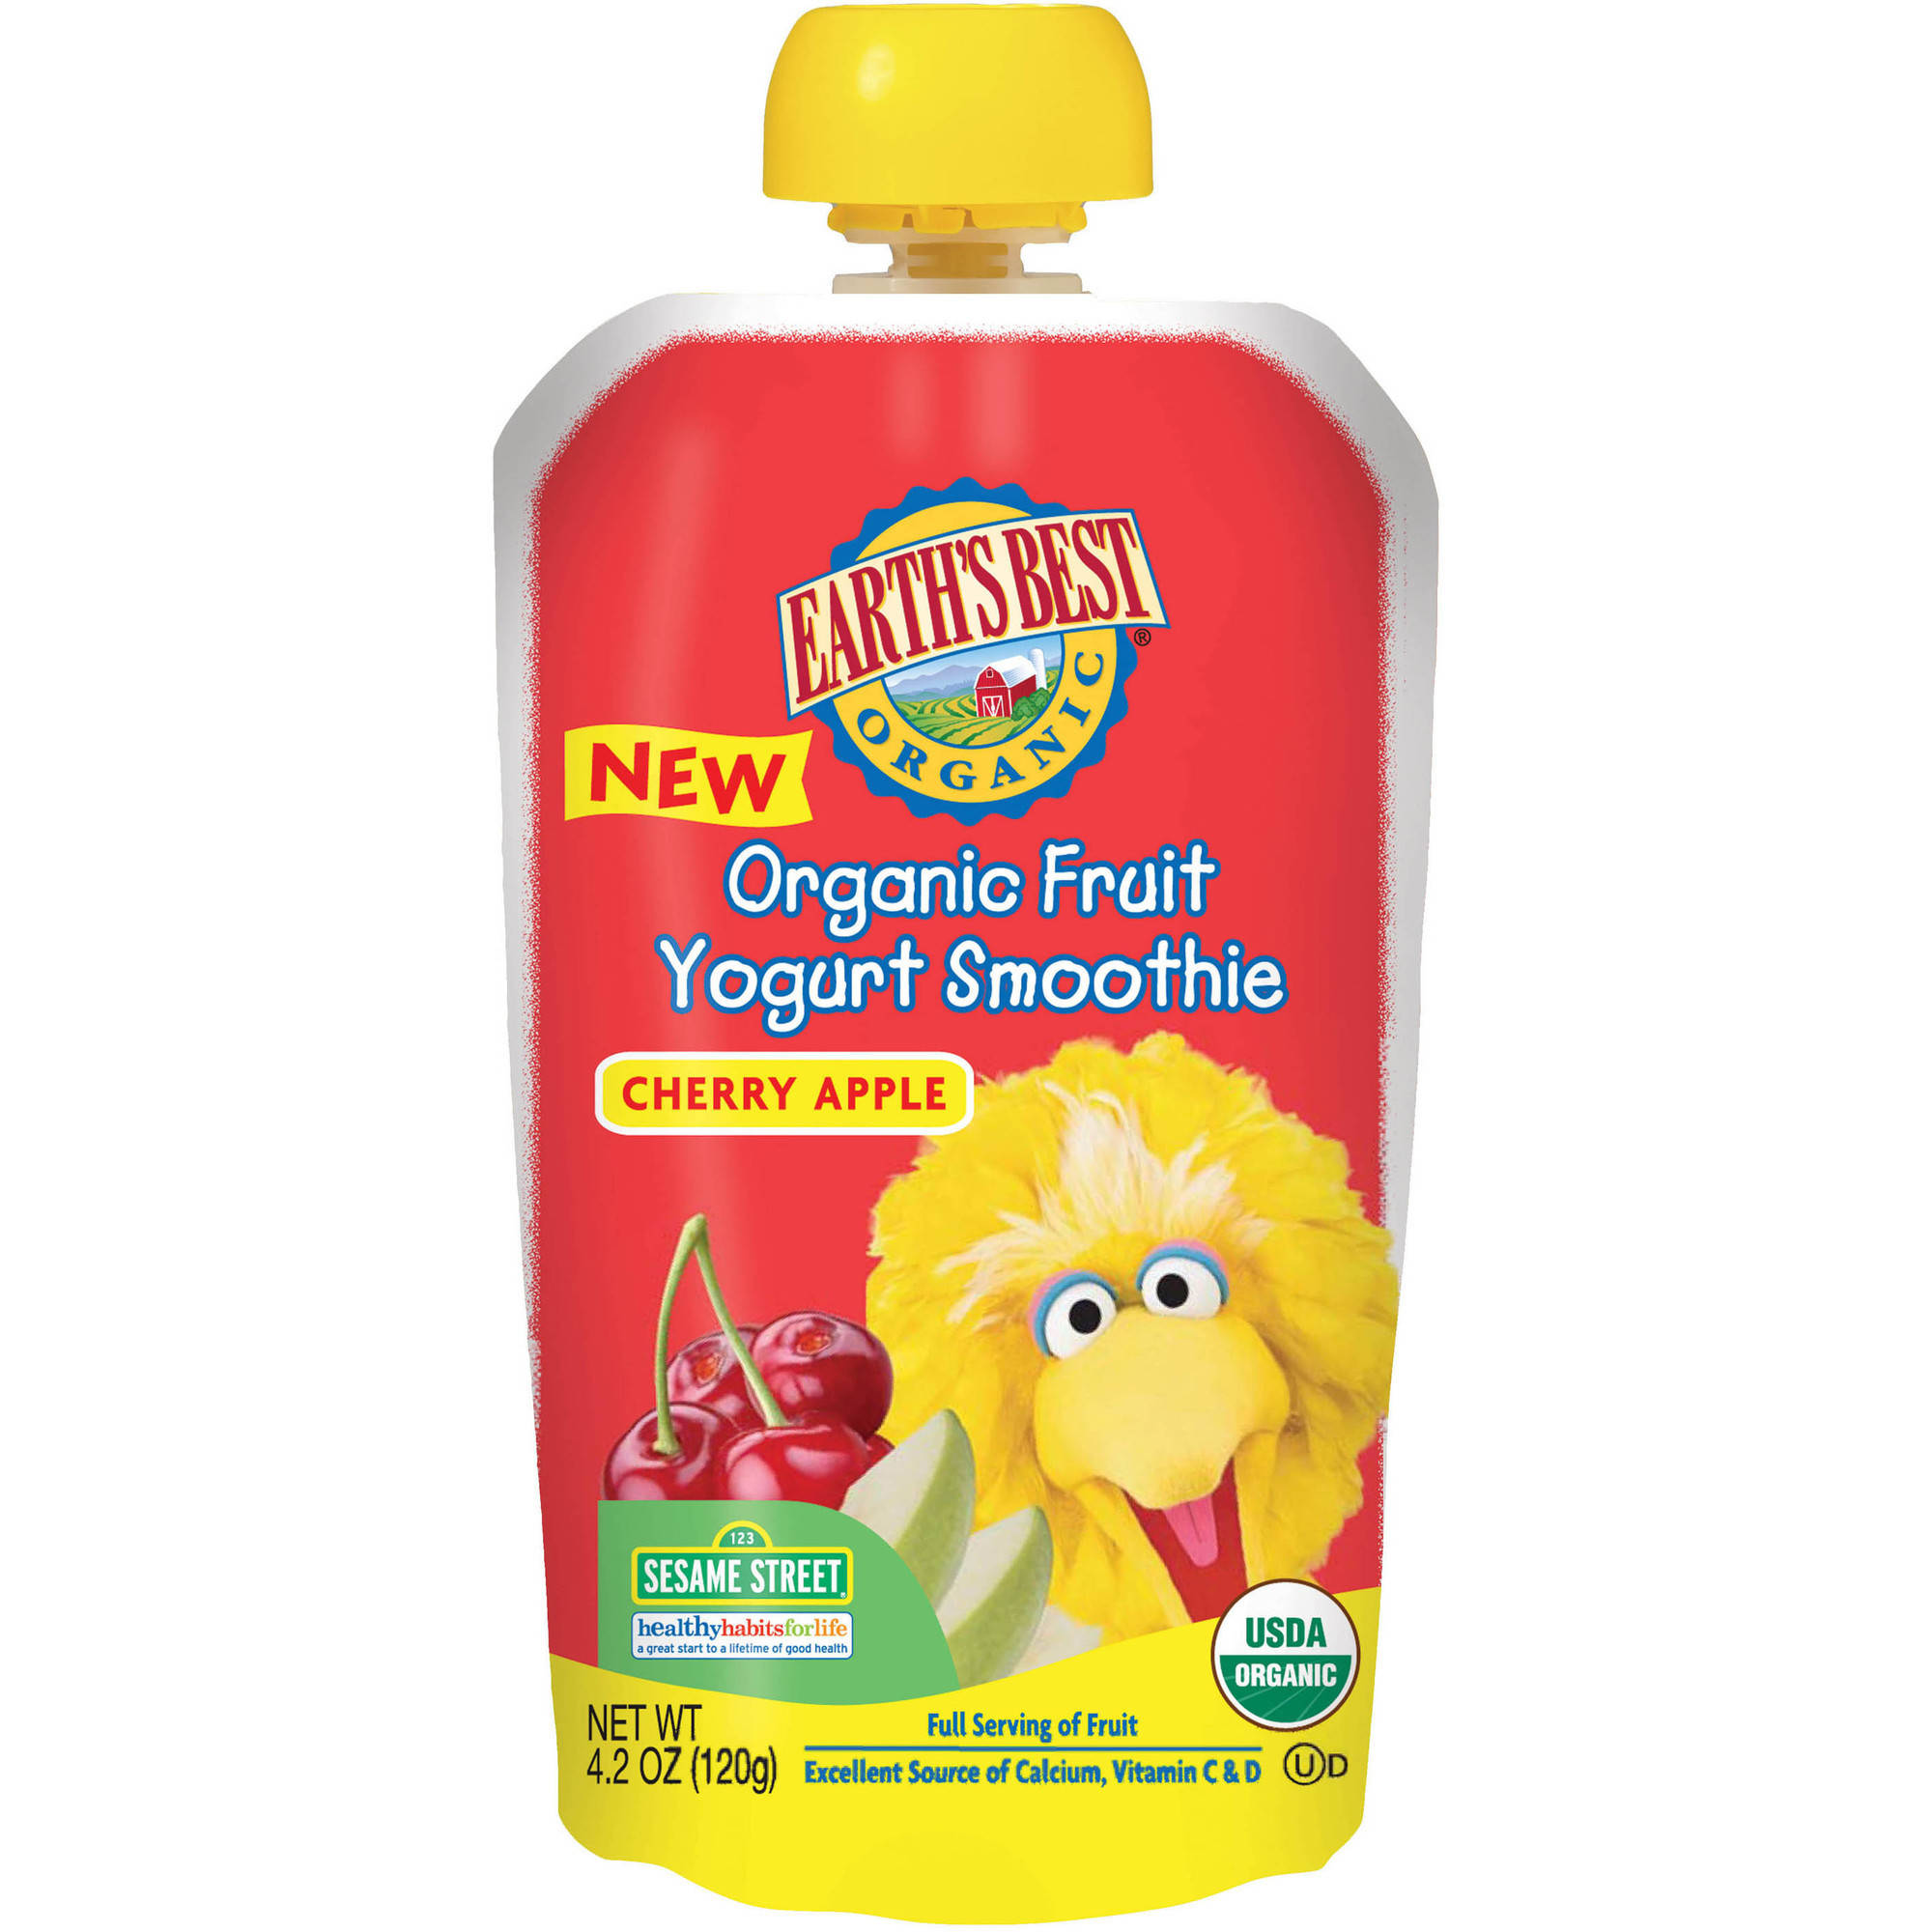 Earth's Best Organic Sesame Street Cherry Apple Fruit Yogurt Smoothie, 4.2 oz, (Pack of 6)